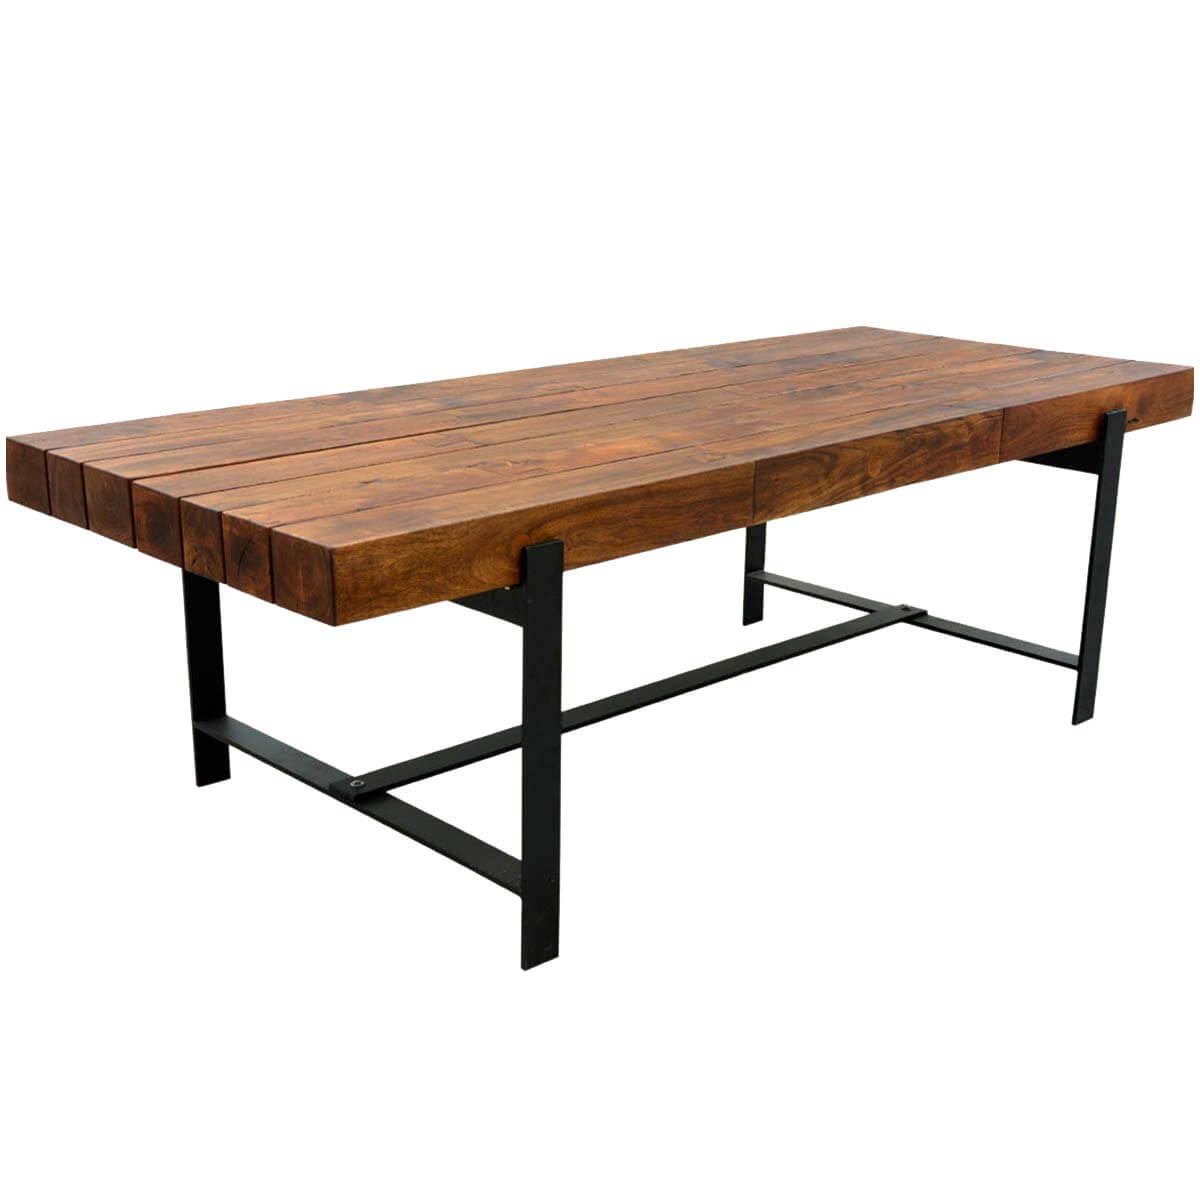 Acacia Dining Table Industrial Iron And Acacia Wood 94 Quot Large Rustic Dining Table